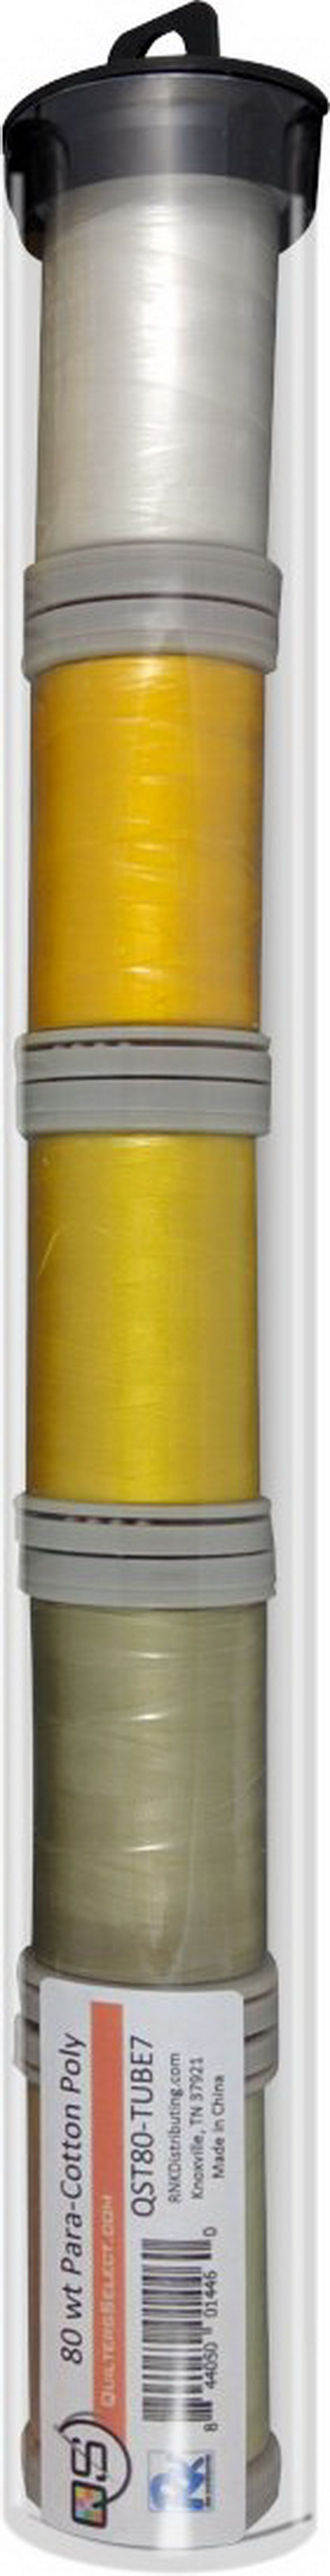 Quilters Select Para-Cotton Polyester Thread 80 Weight Tube Bundle 7